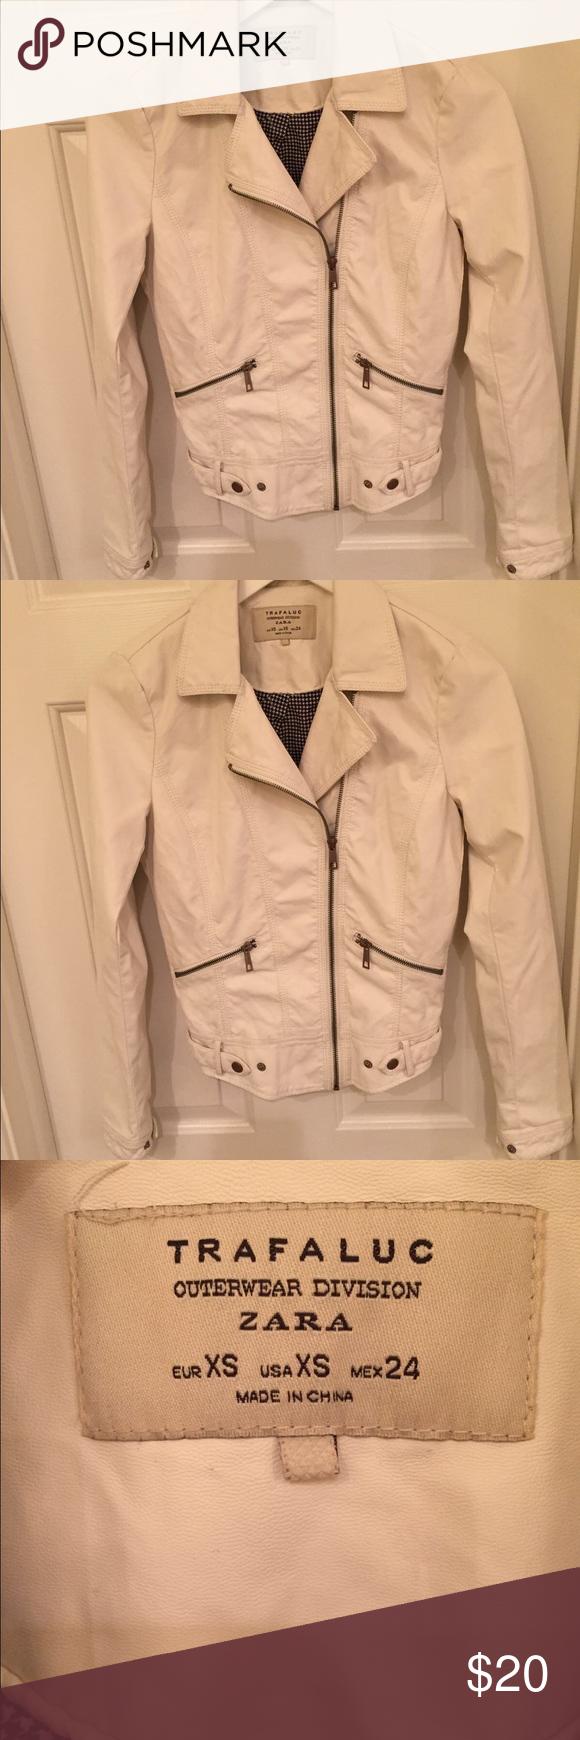 Zara Off White Faux Leather Jacket Faux leather jackets